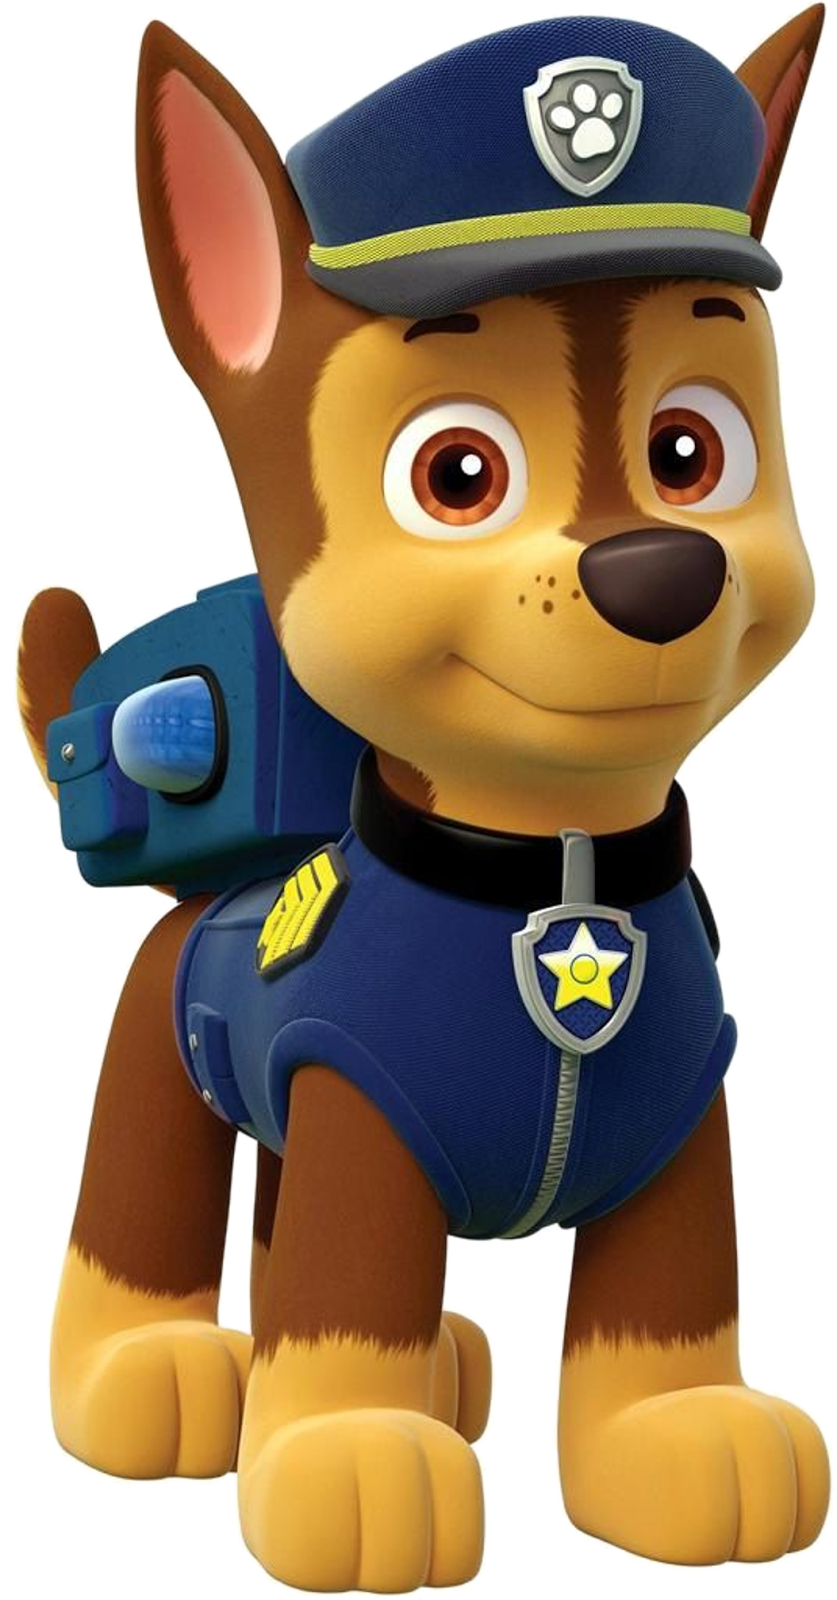 Paw Patrol Freeuse Rr Collections Png Paw Patrol Rocky Chase Paw Patrol Paw Patrol Case